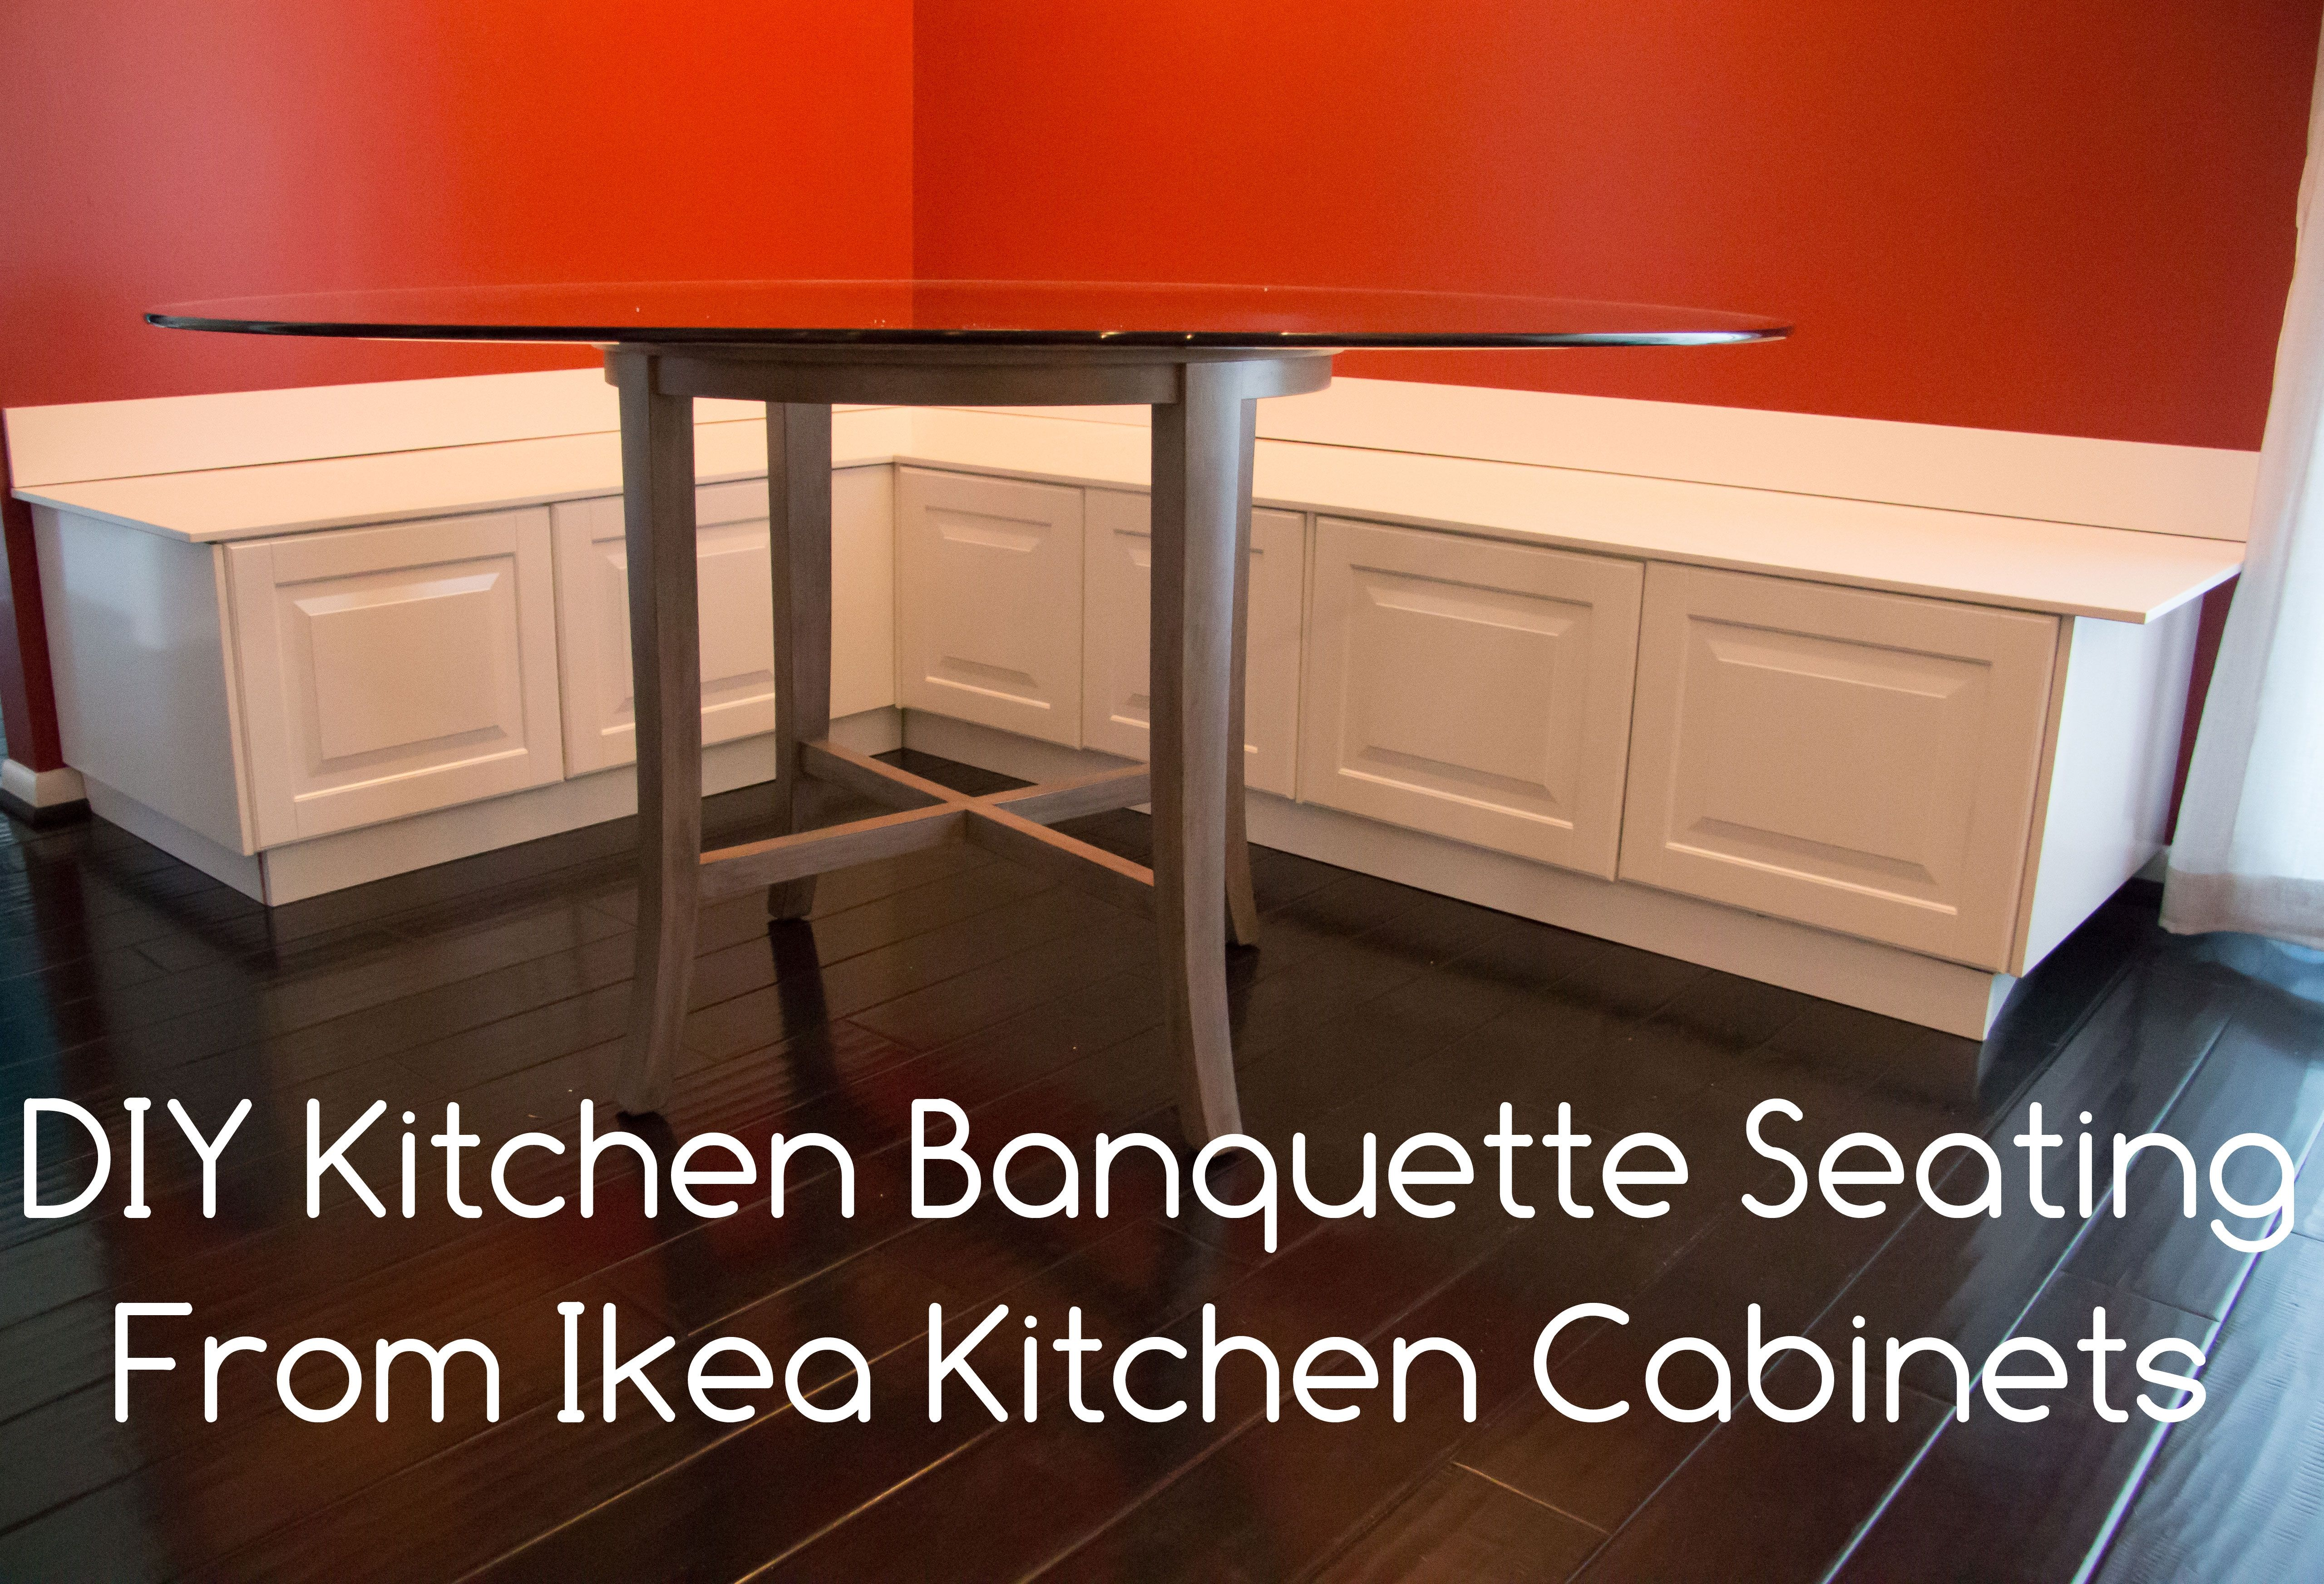 Kitchen Banquette Ideas Spoon Diy Seating Using Ikea Cabinets Would